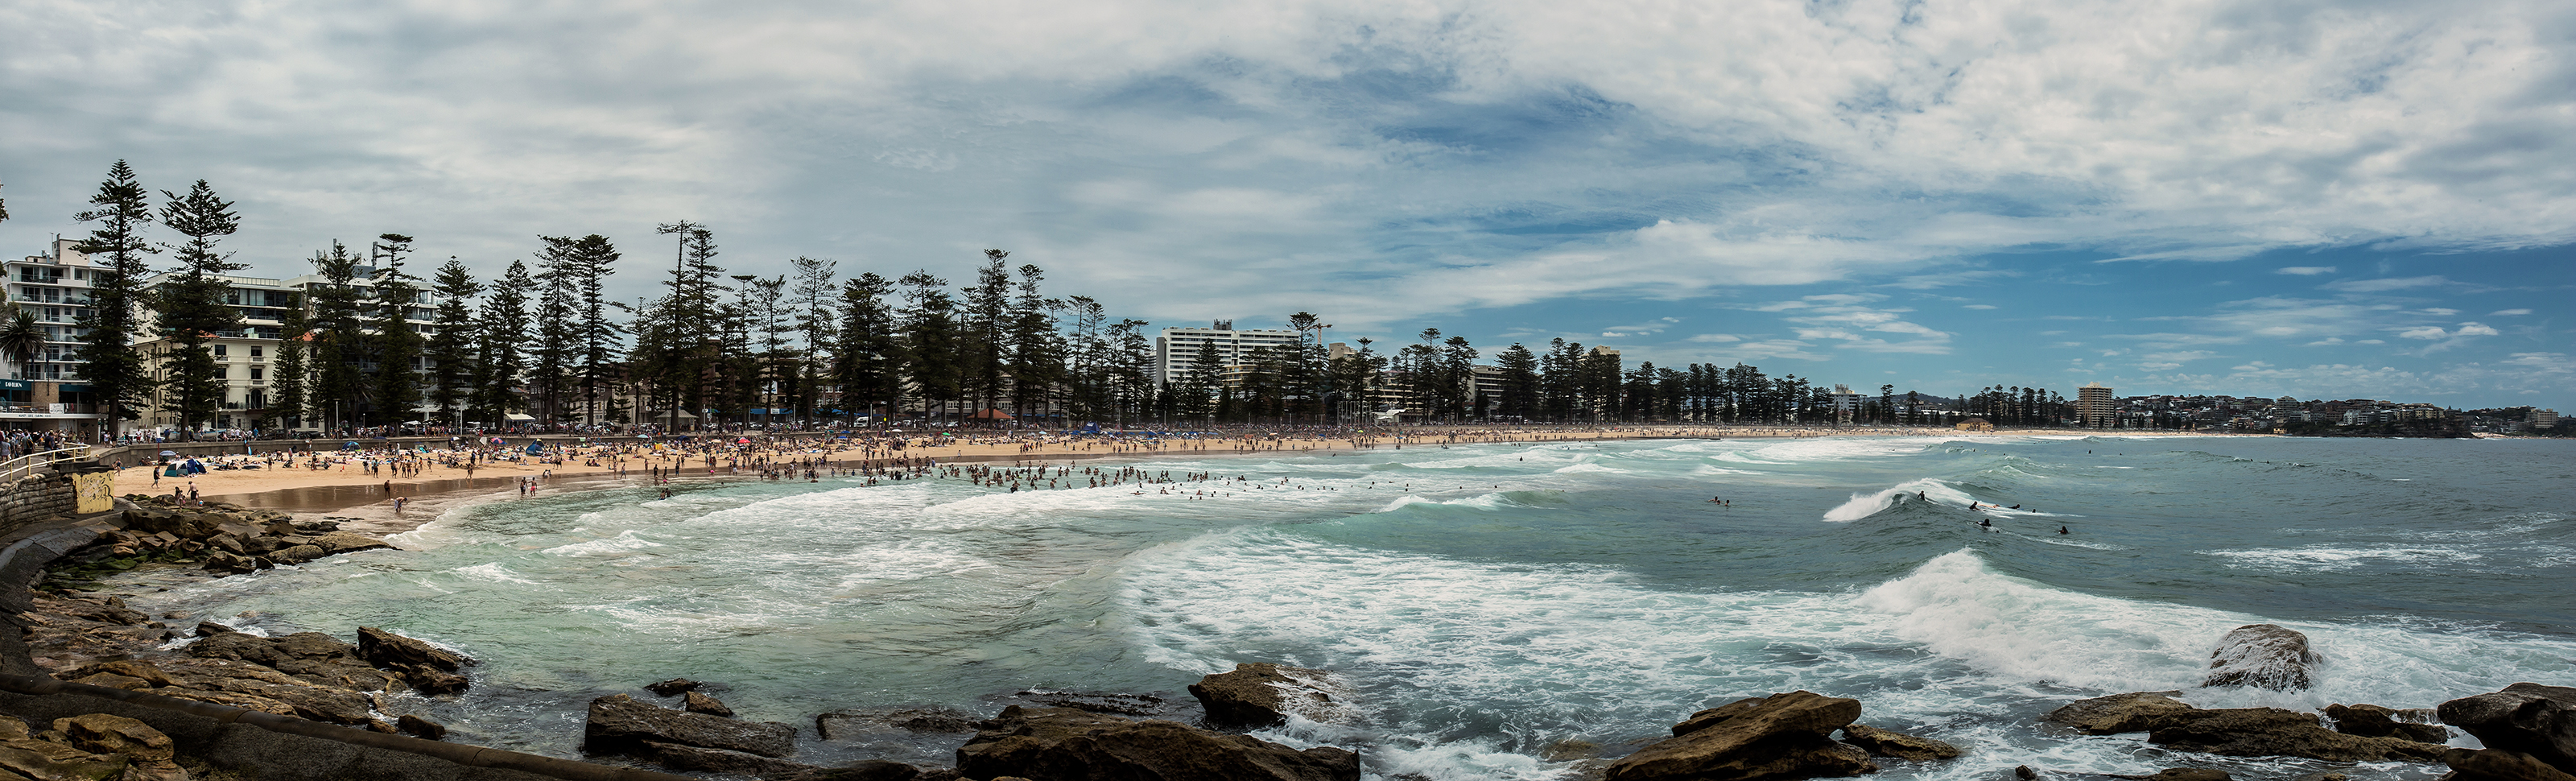 4F Pano Manly Beach NSW